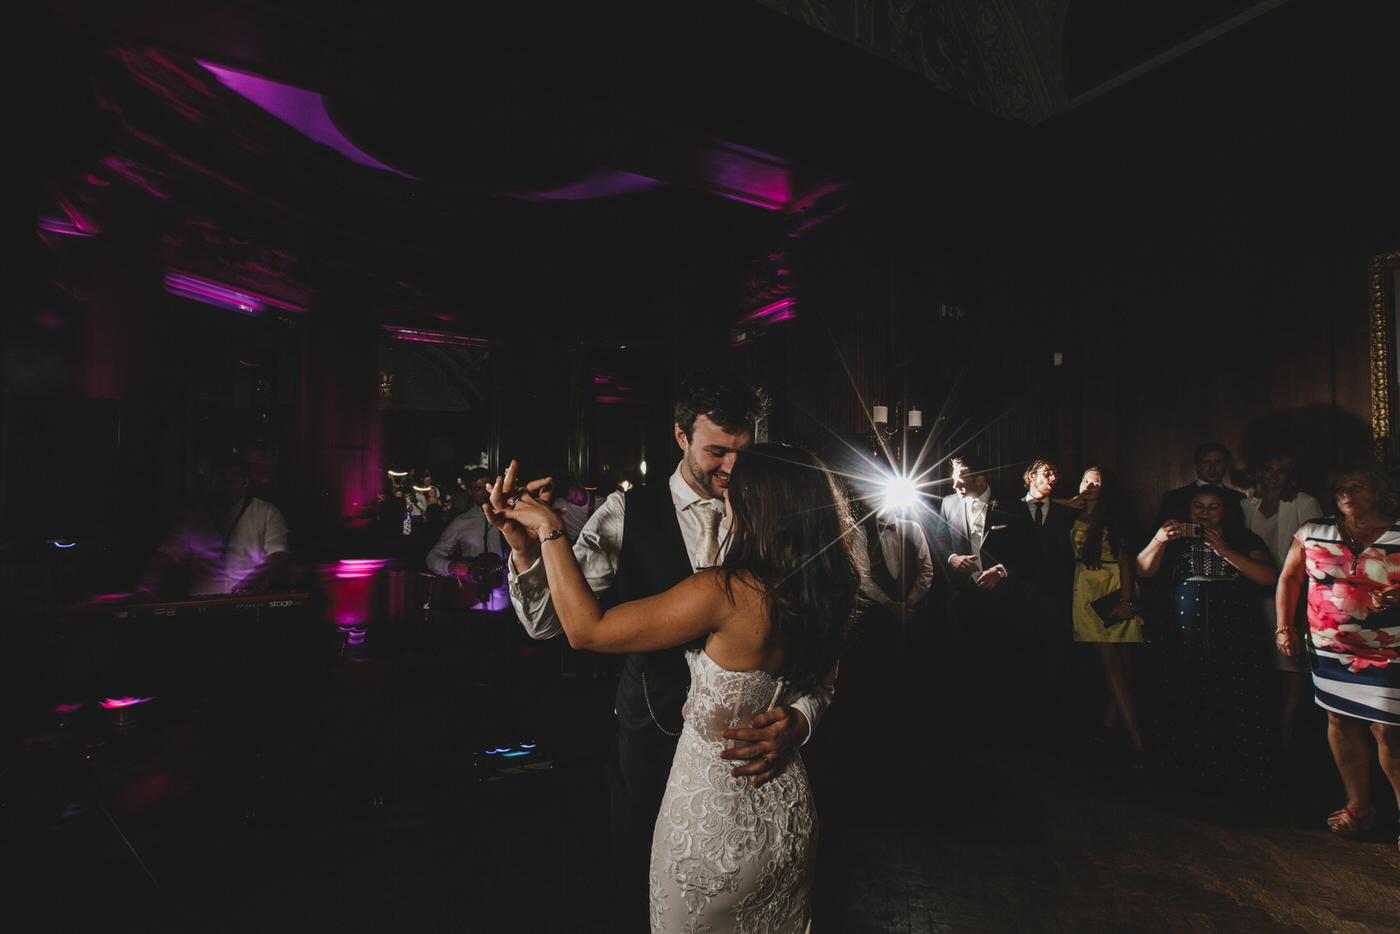 guests look on as the bride and groom enjoy their first dance